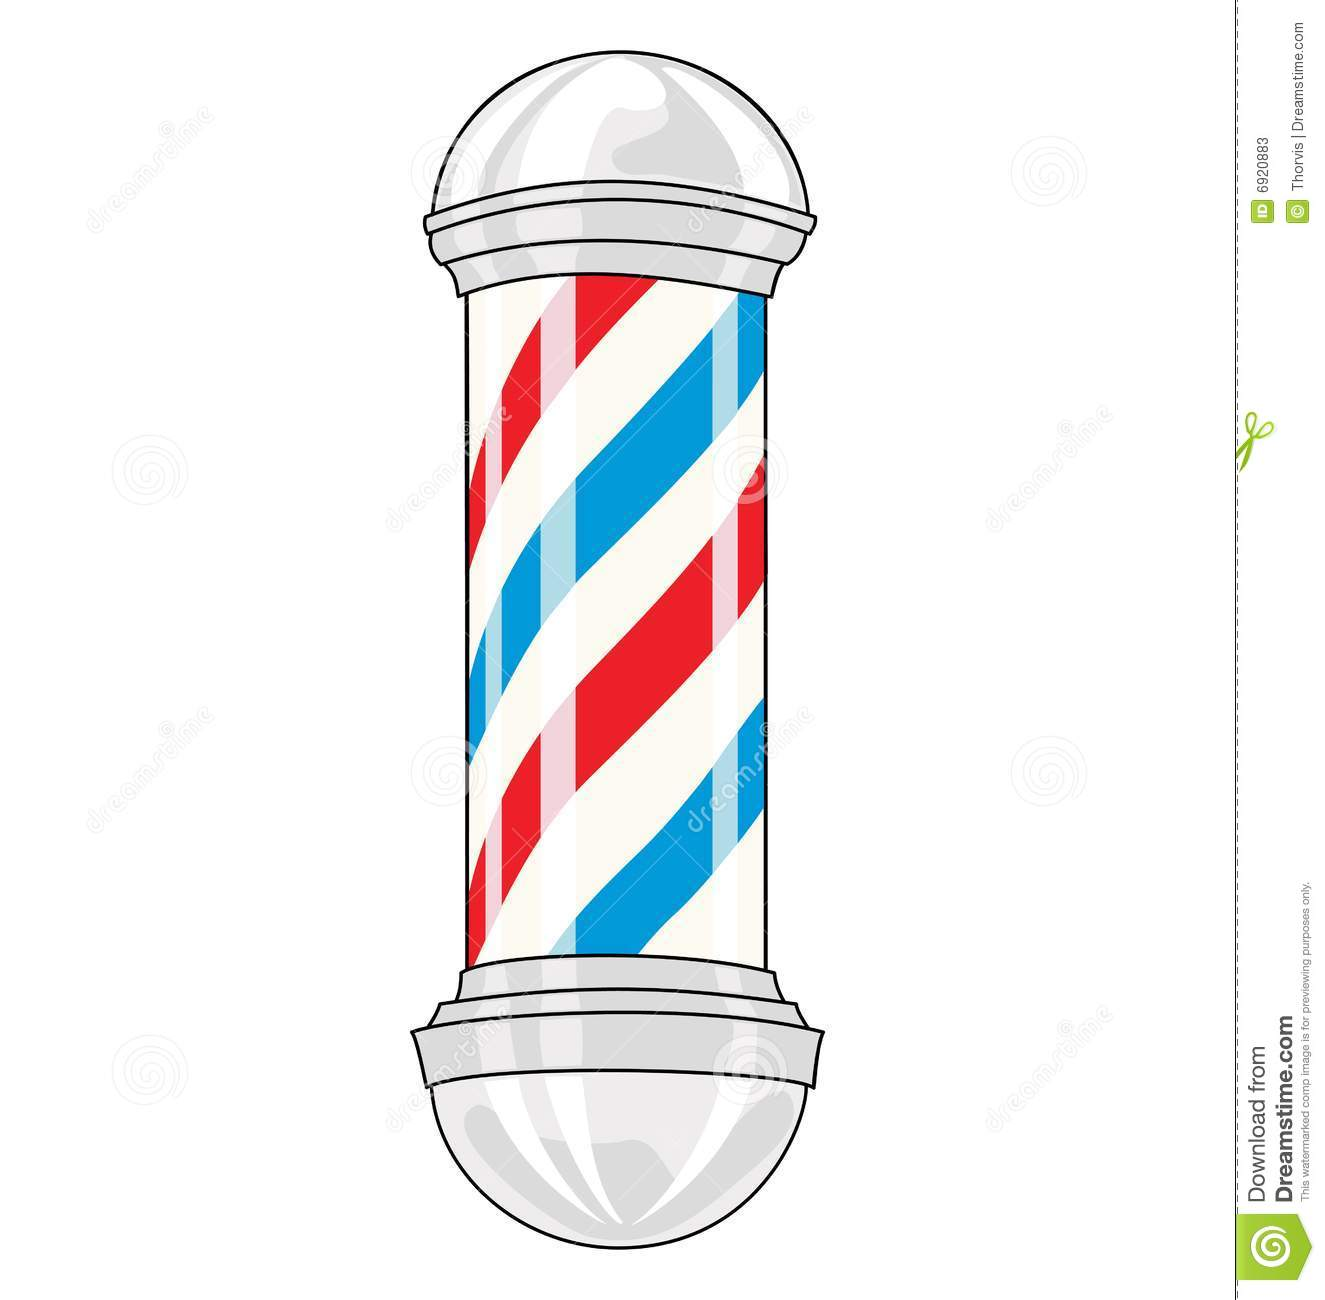 Clipart barber pole graphic freeuse stock 102+ Barber Pole Clipart | ClipartLook graphic freeuse stock